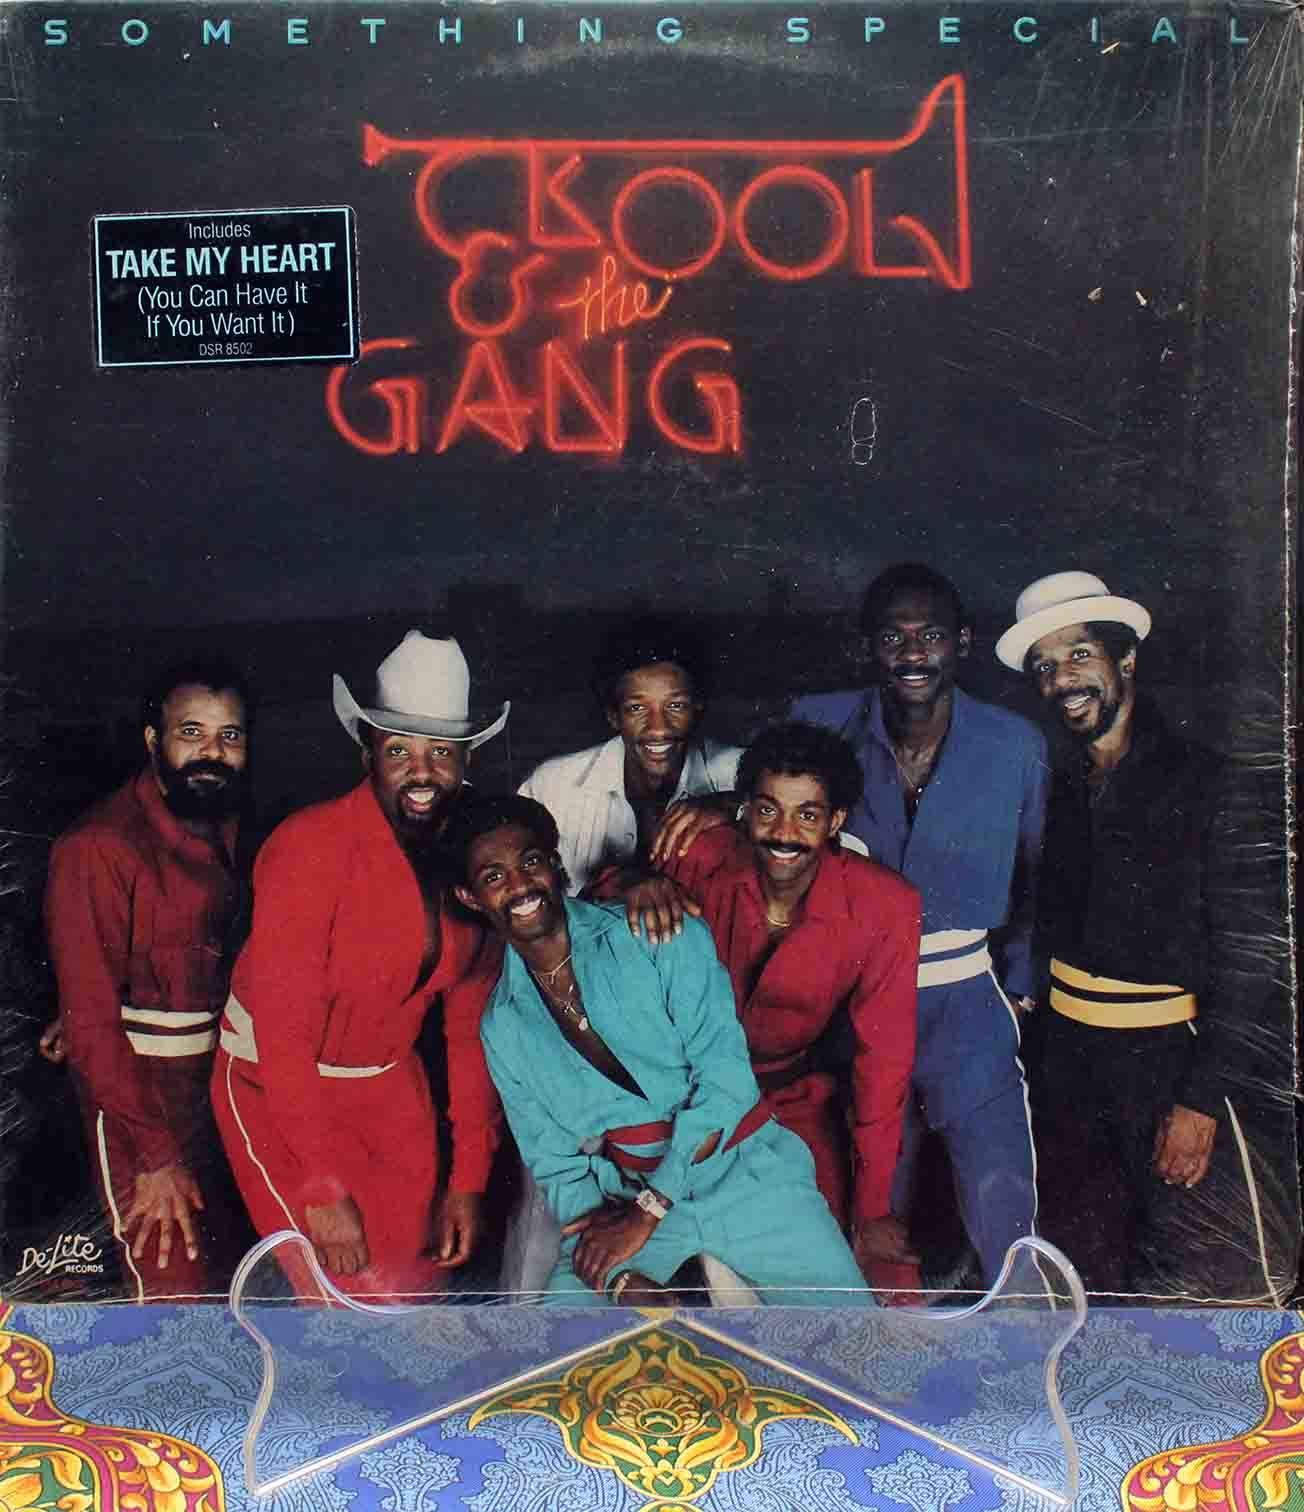 Kool The Gang ‎– Something Special LP 01